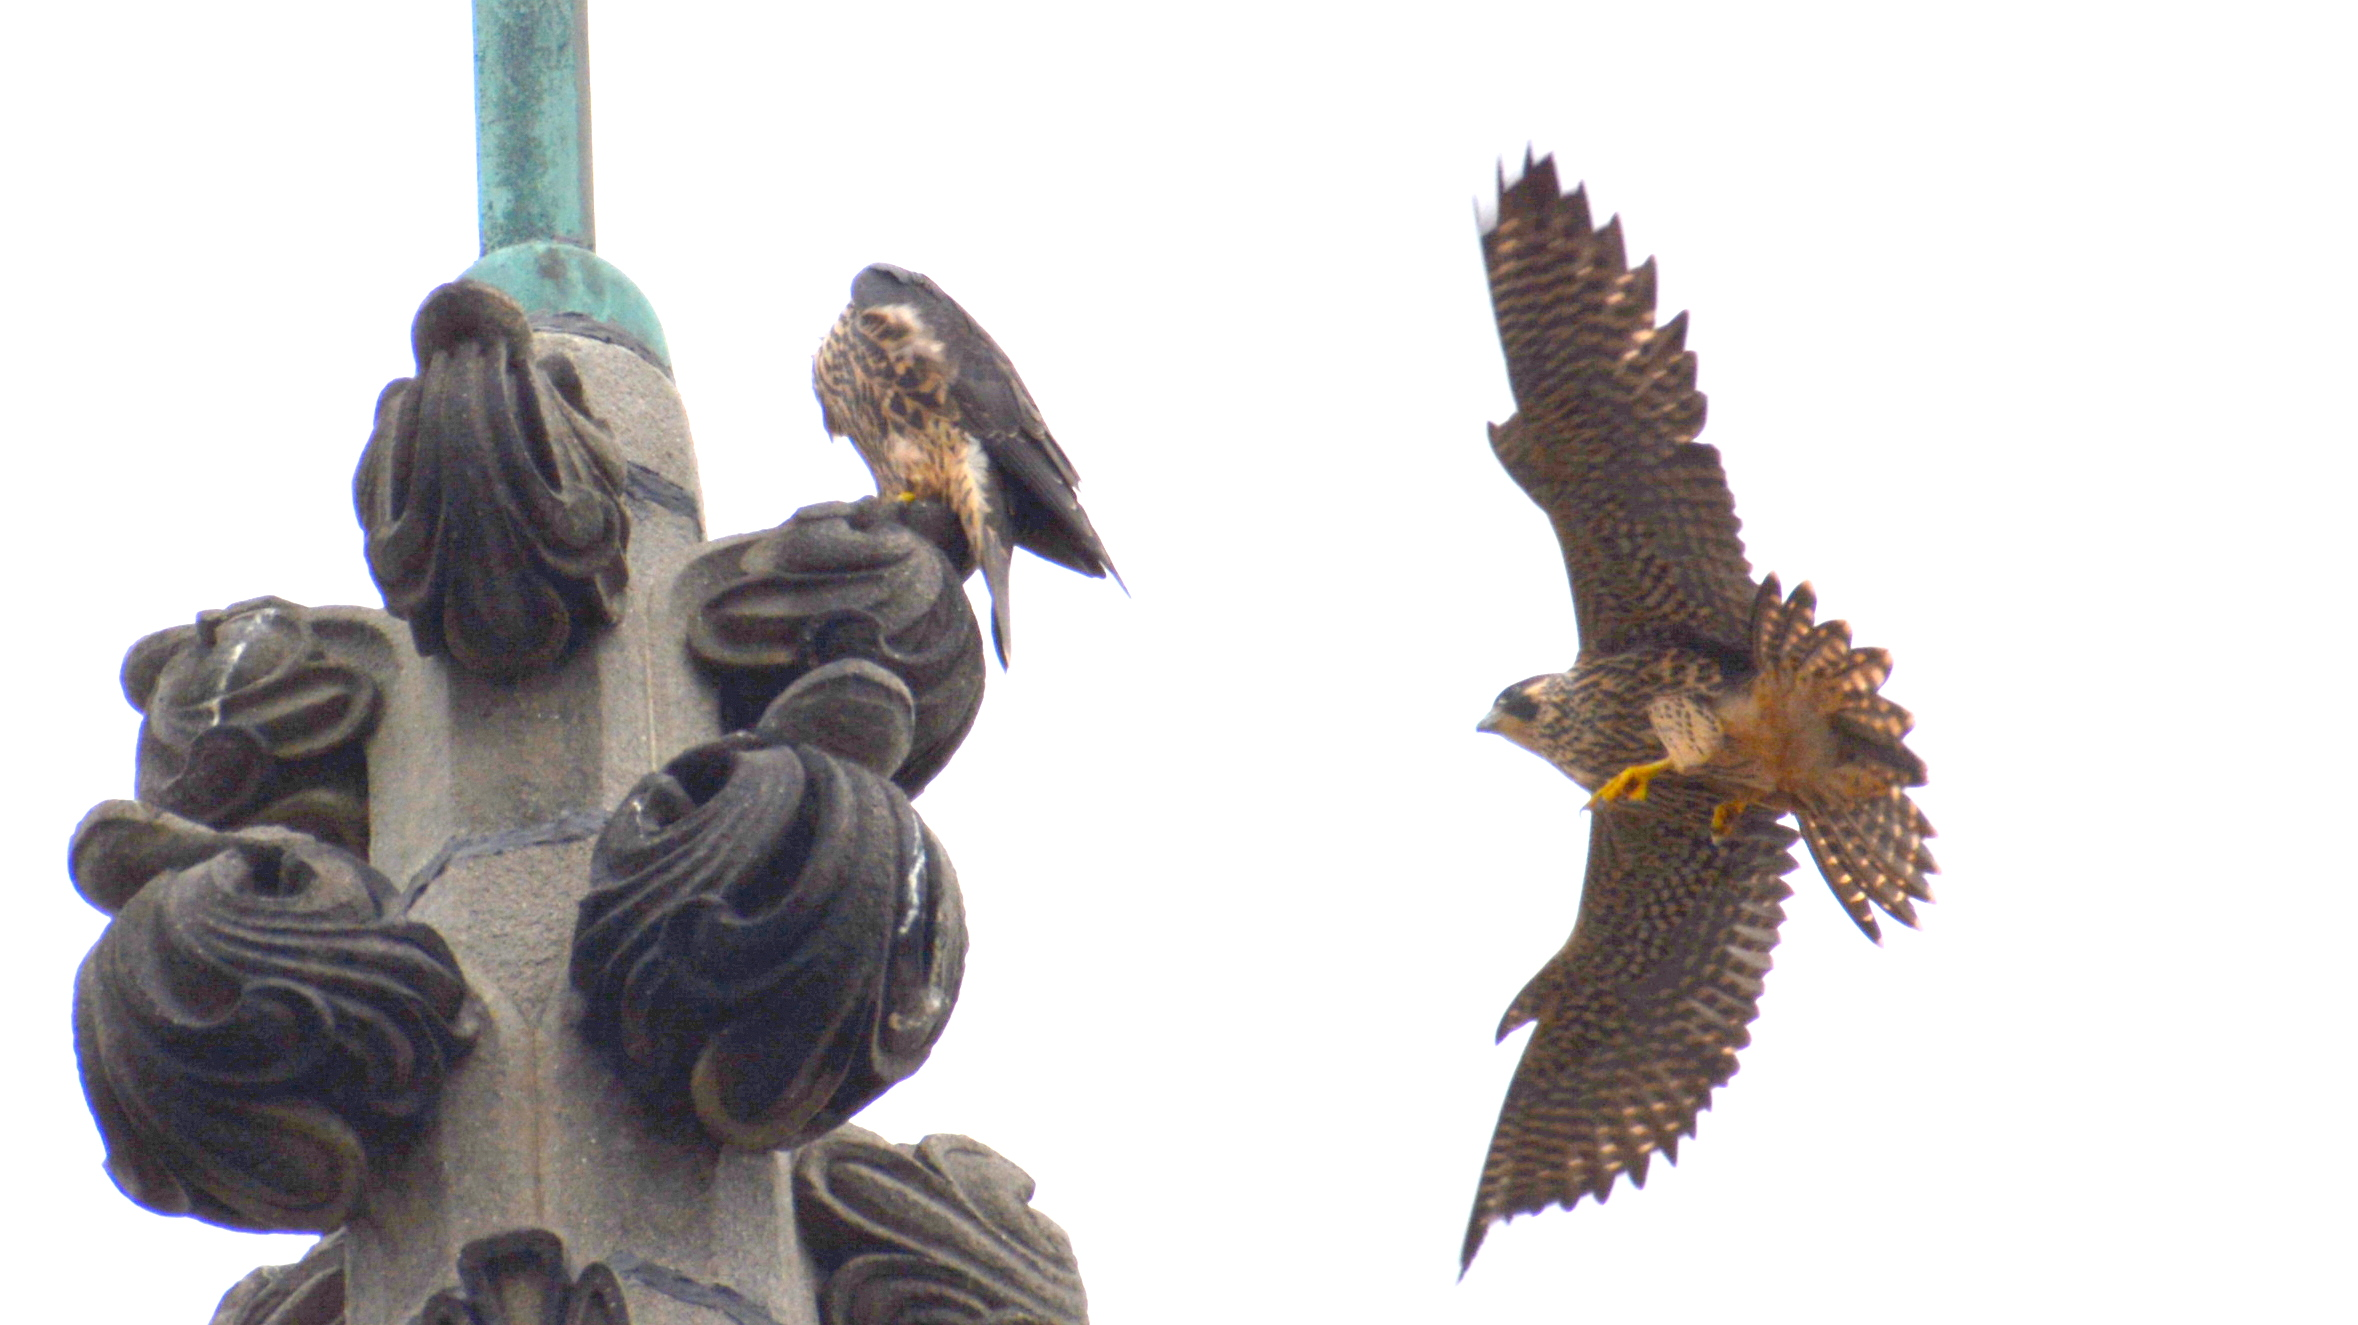 Landing on the steeple's highest [perch